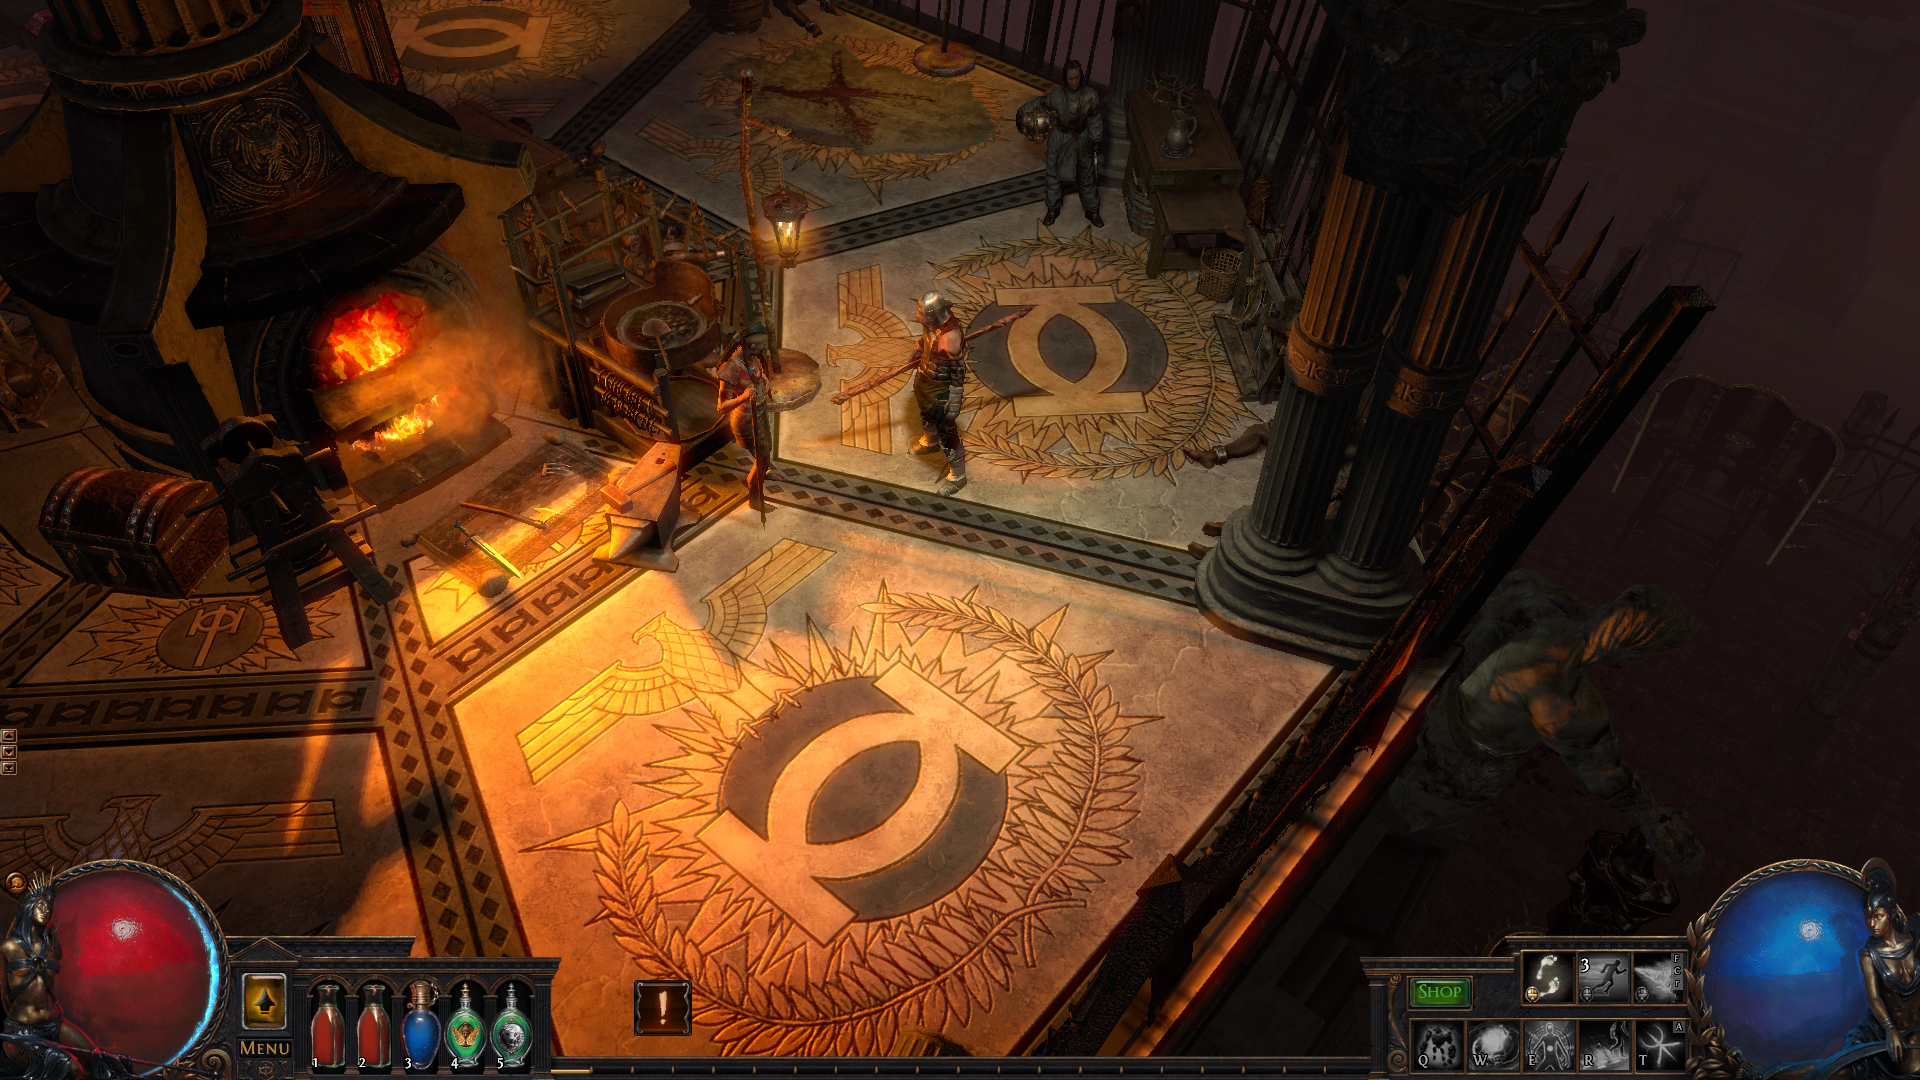 Playing In The Fall Wallpaper Path Of Exile Act 5 The Fall Of Oriath Brings Major